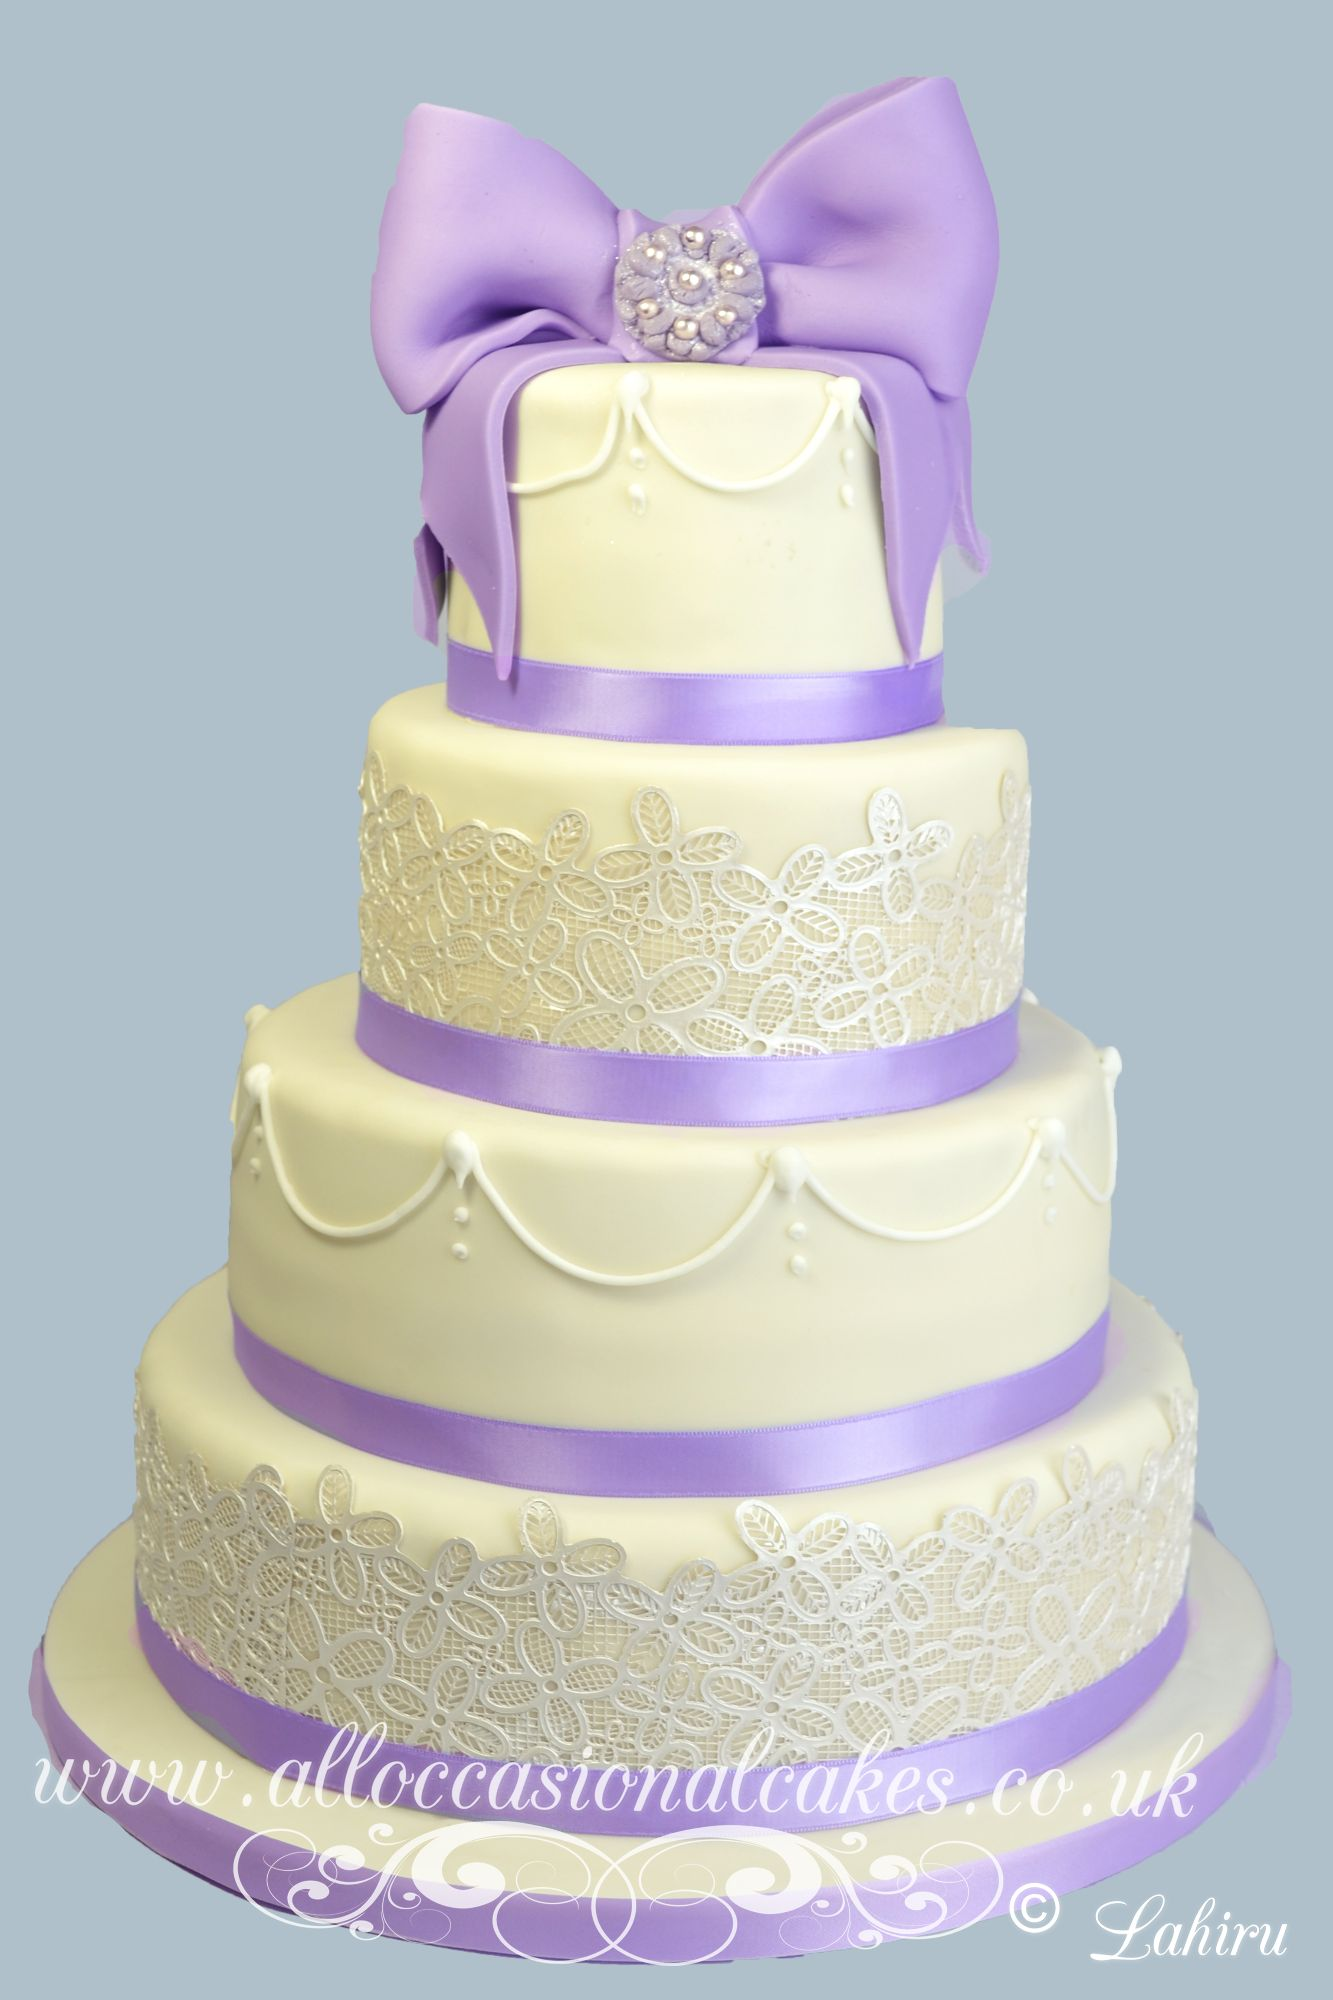 Lilac bow with lace wedding cake